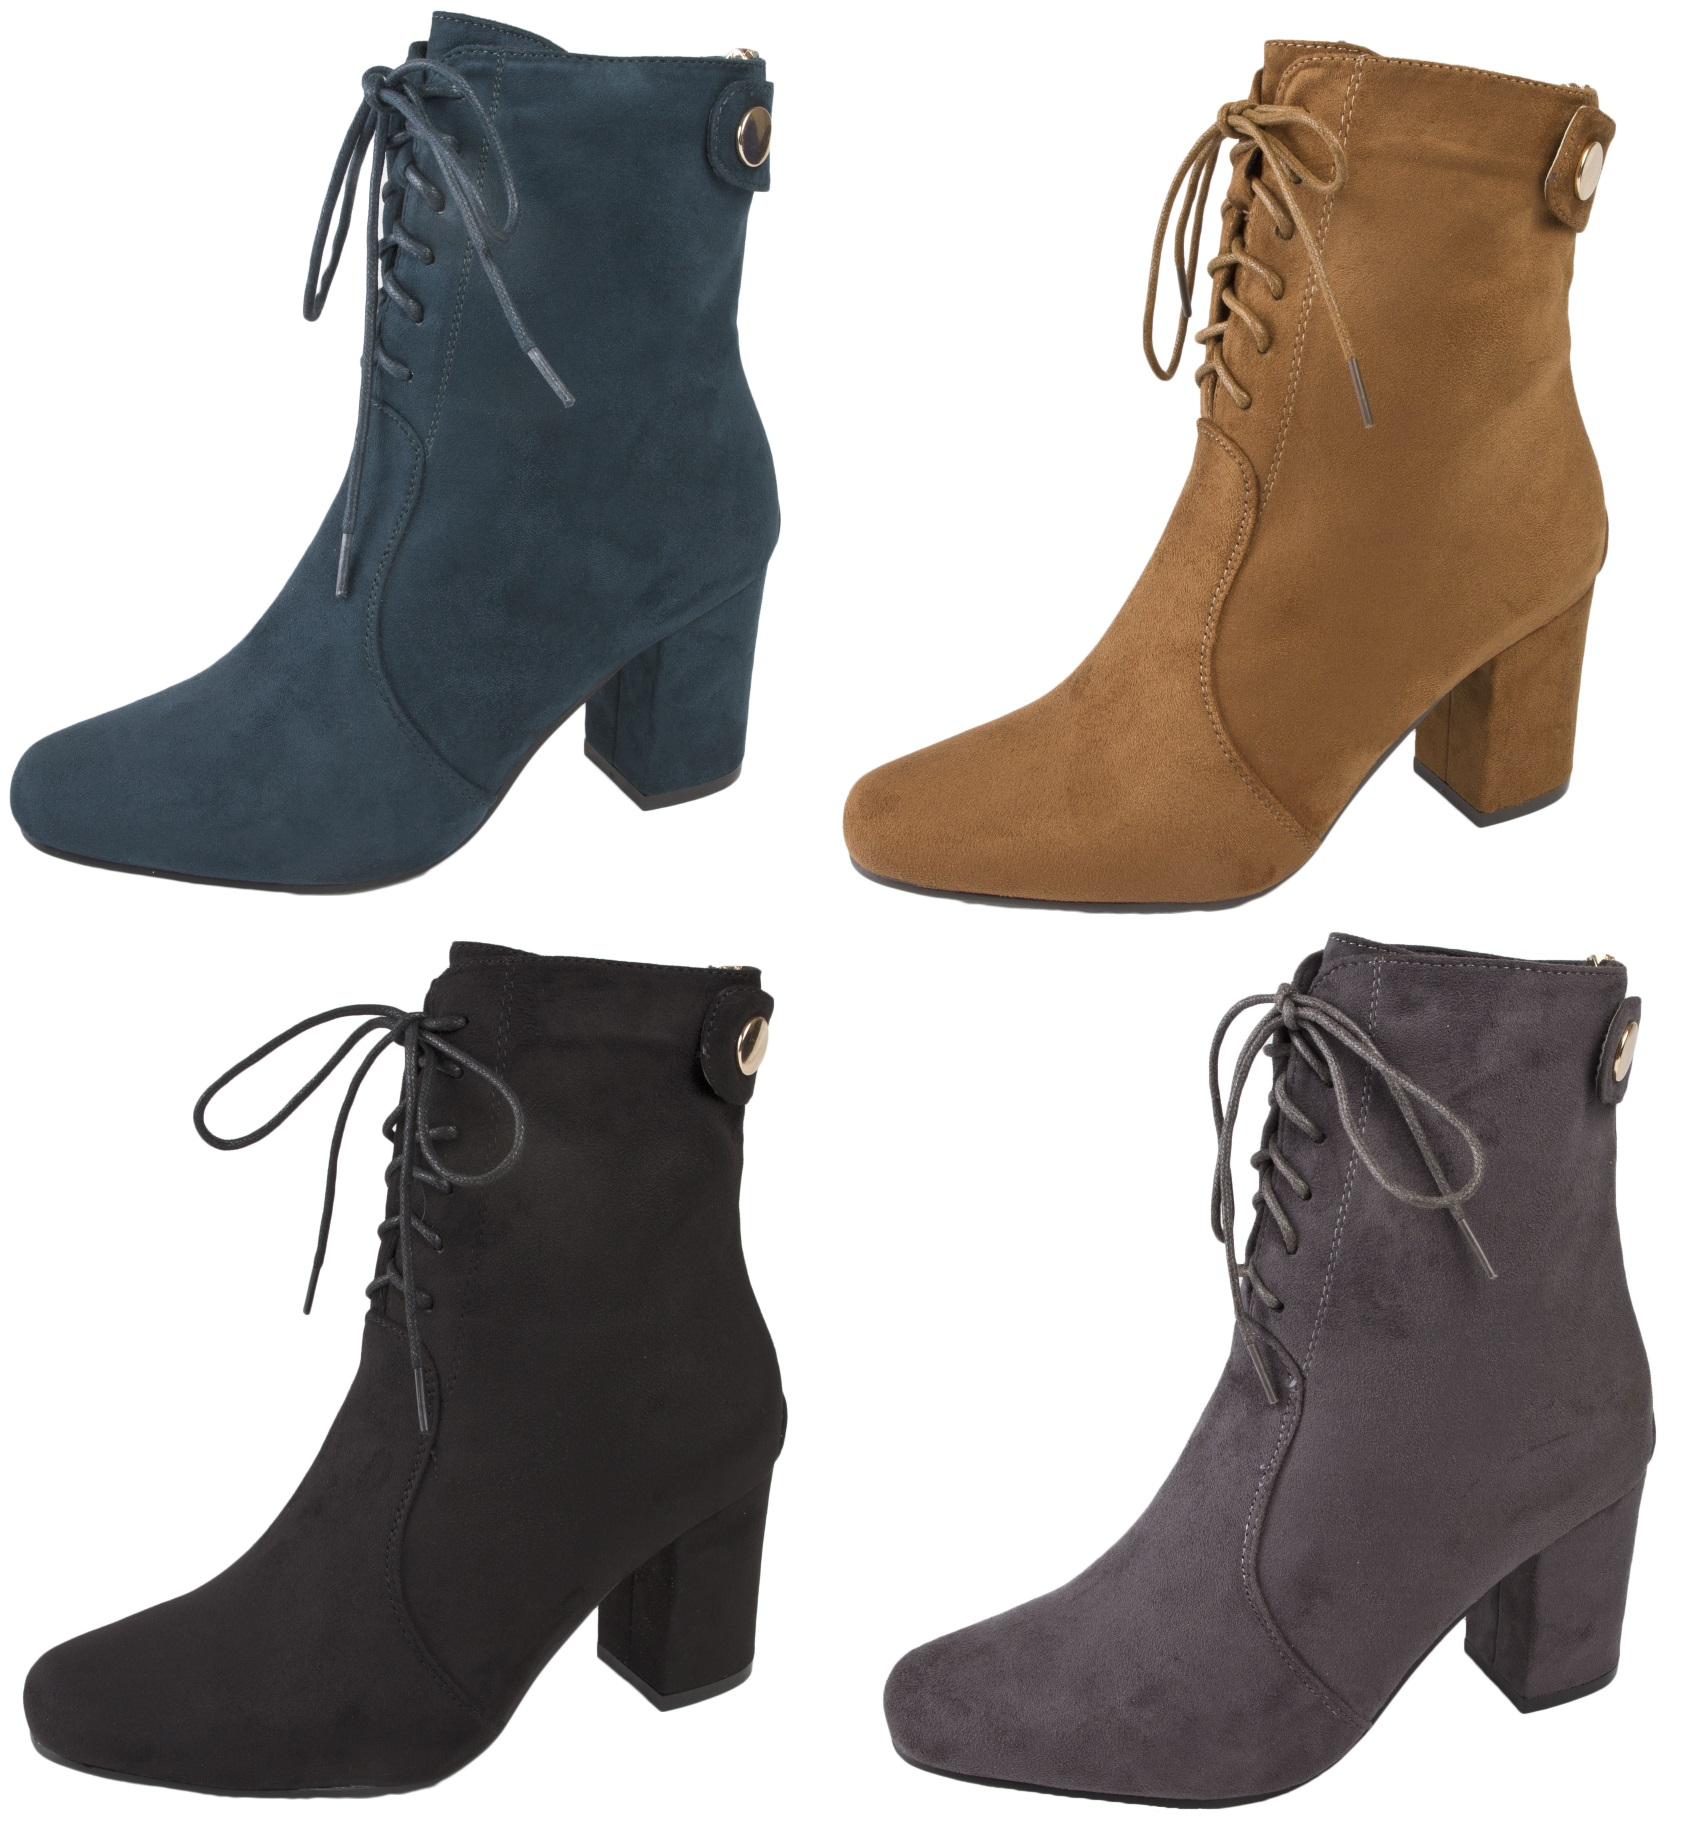 d243bbe1c6b Details about Womens Lace Up Ankle Boots Chunky Block Heels Faux Suede  Leather Winter Size